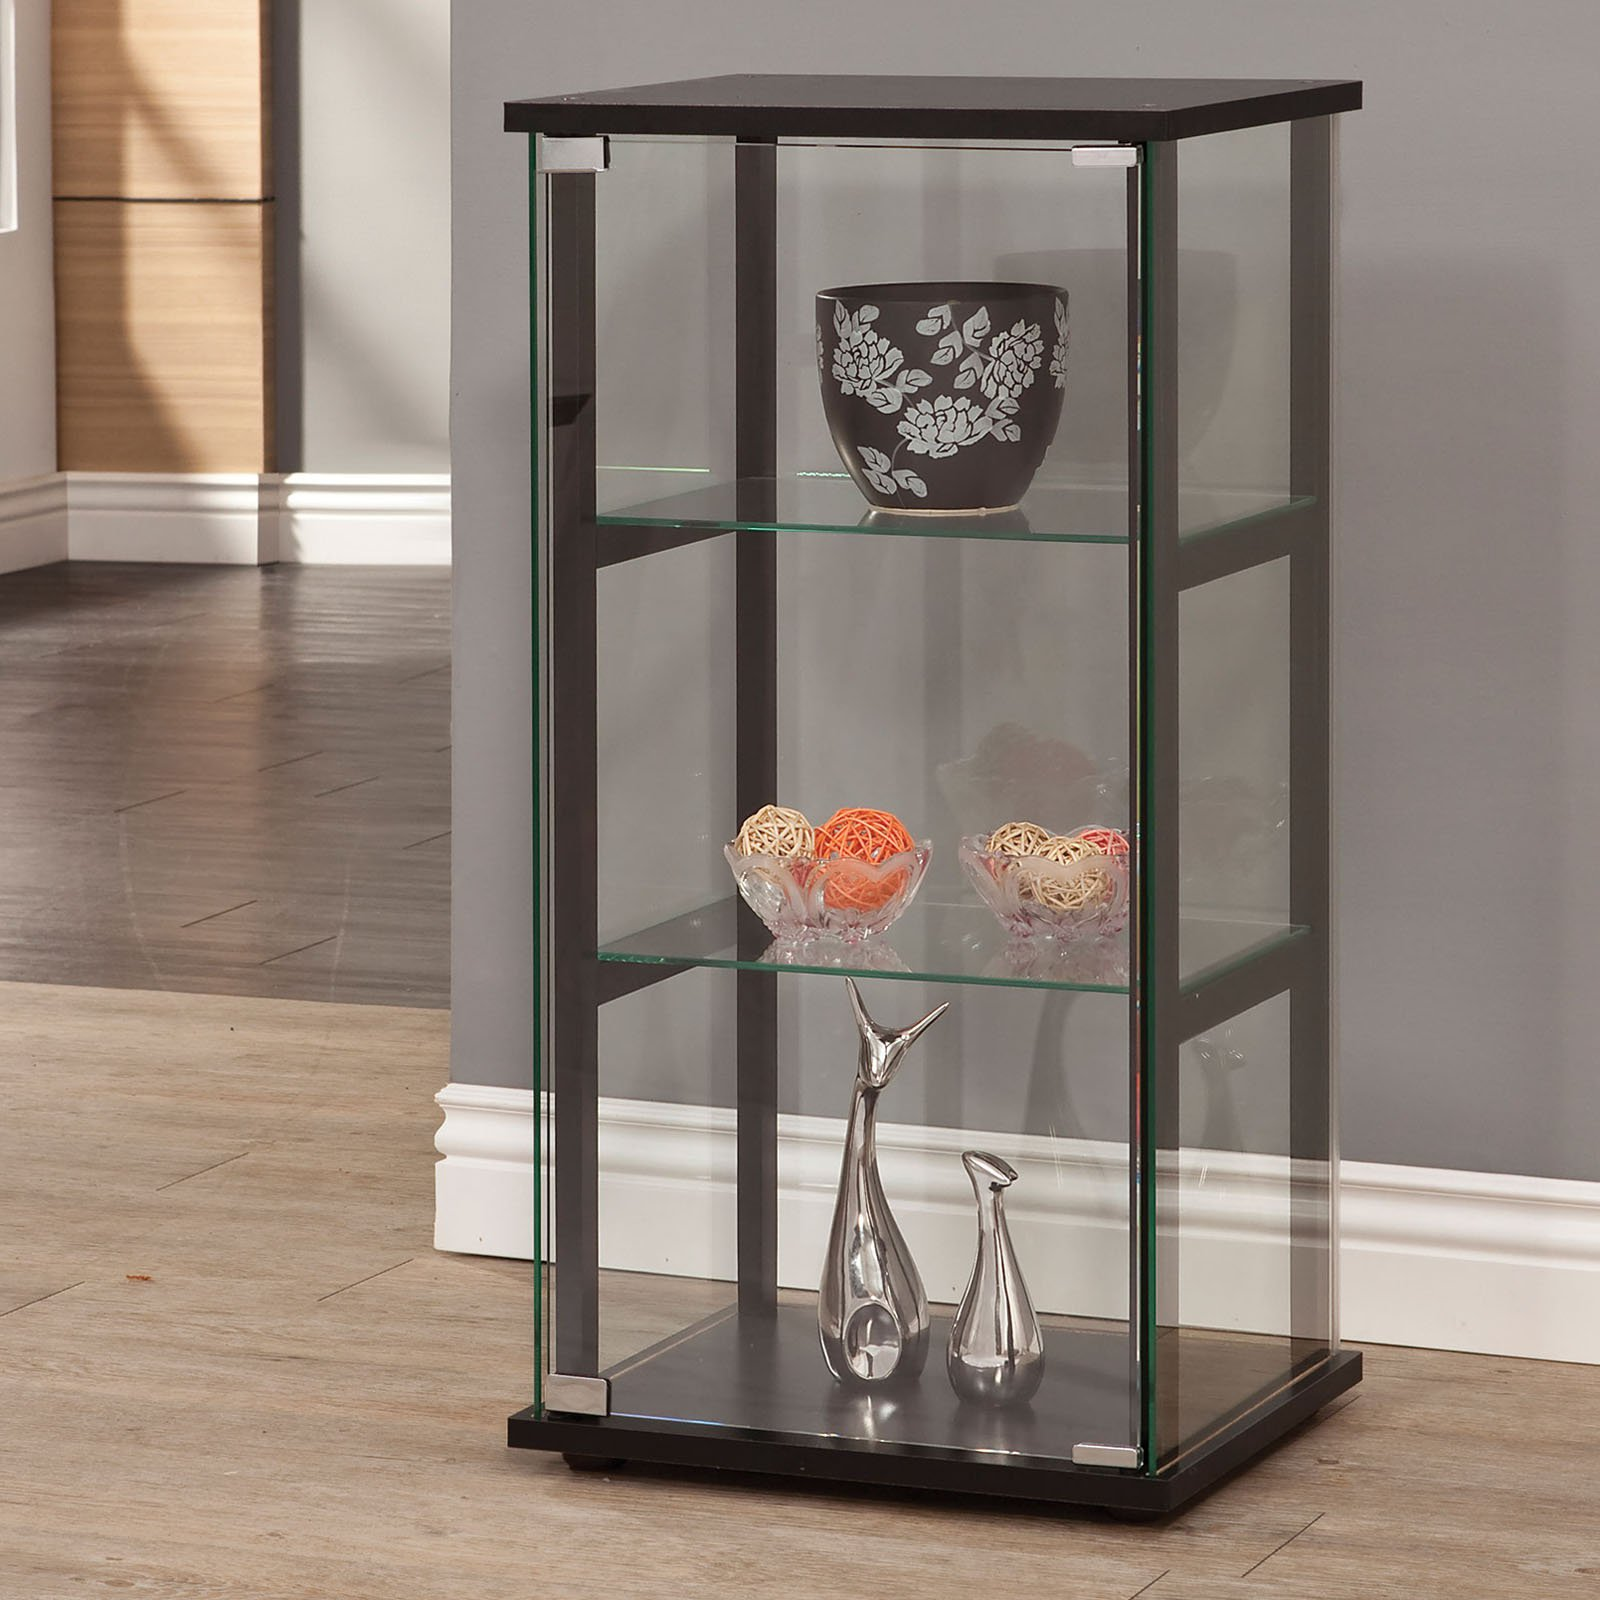 Coaster Company Glass Curio and Simple Black Frame